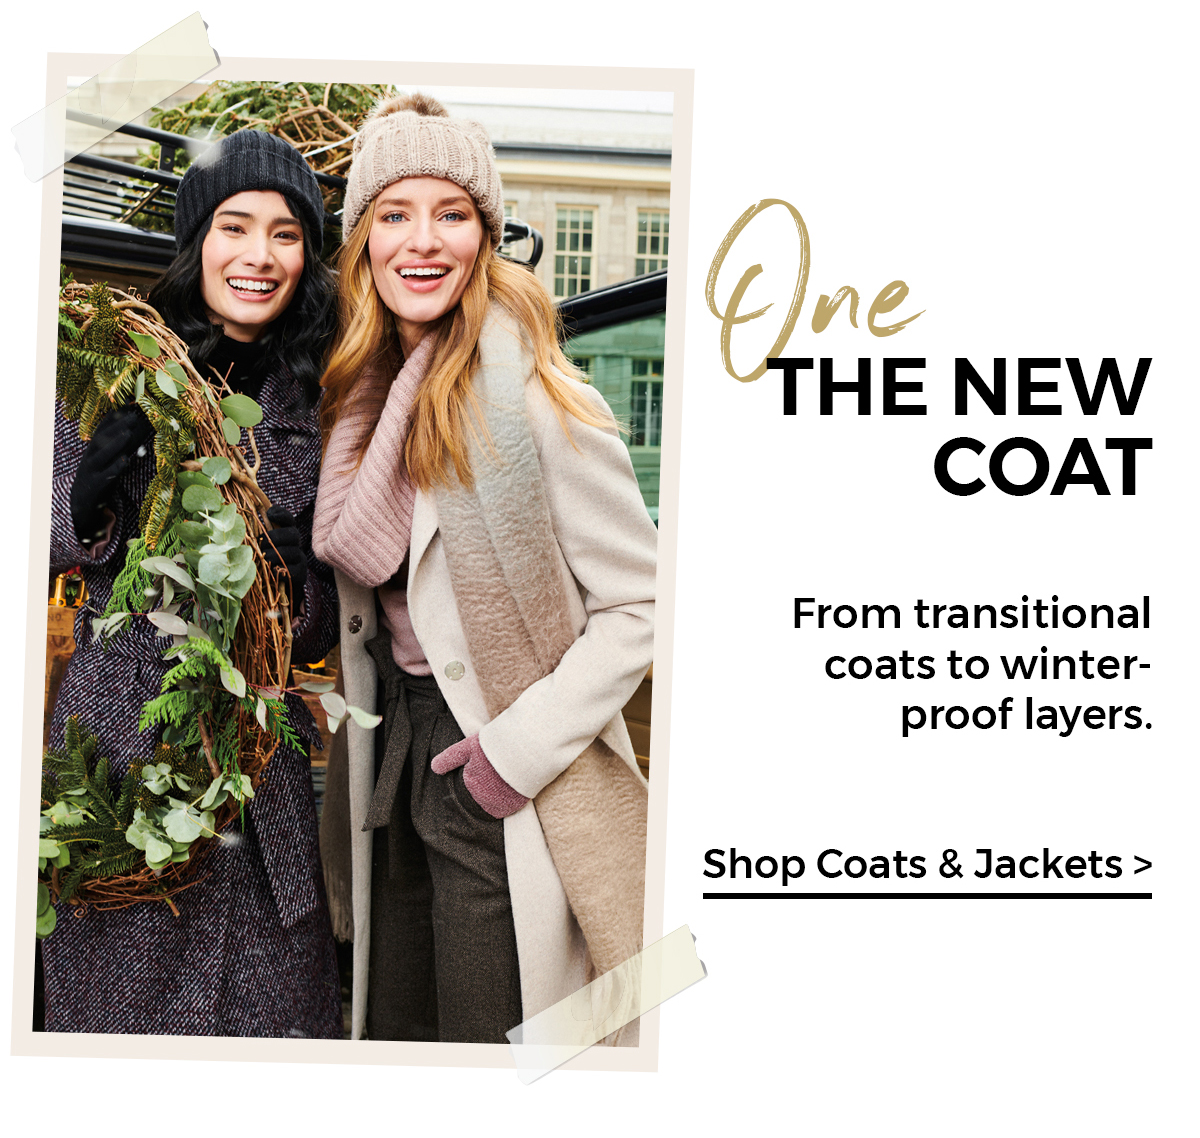 ONE THE NEW COAT From transitional coats to winter-proof layers. Shop coats & jackets